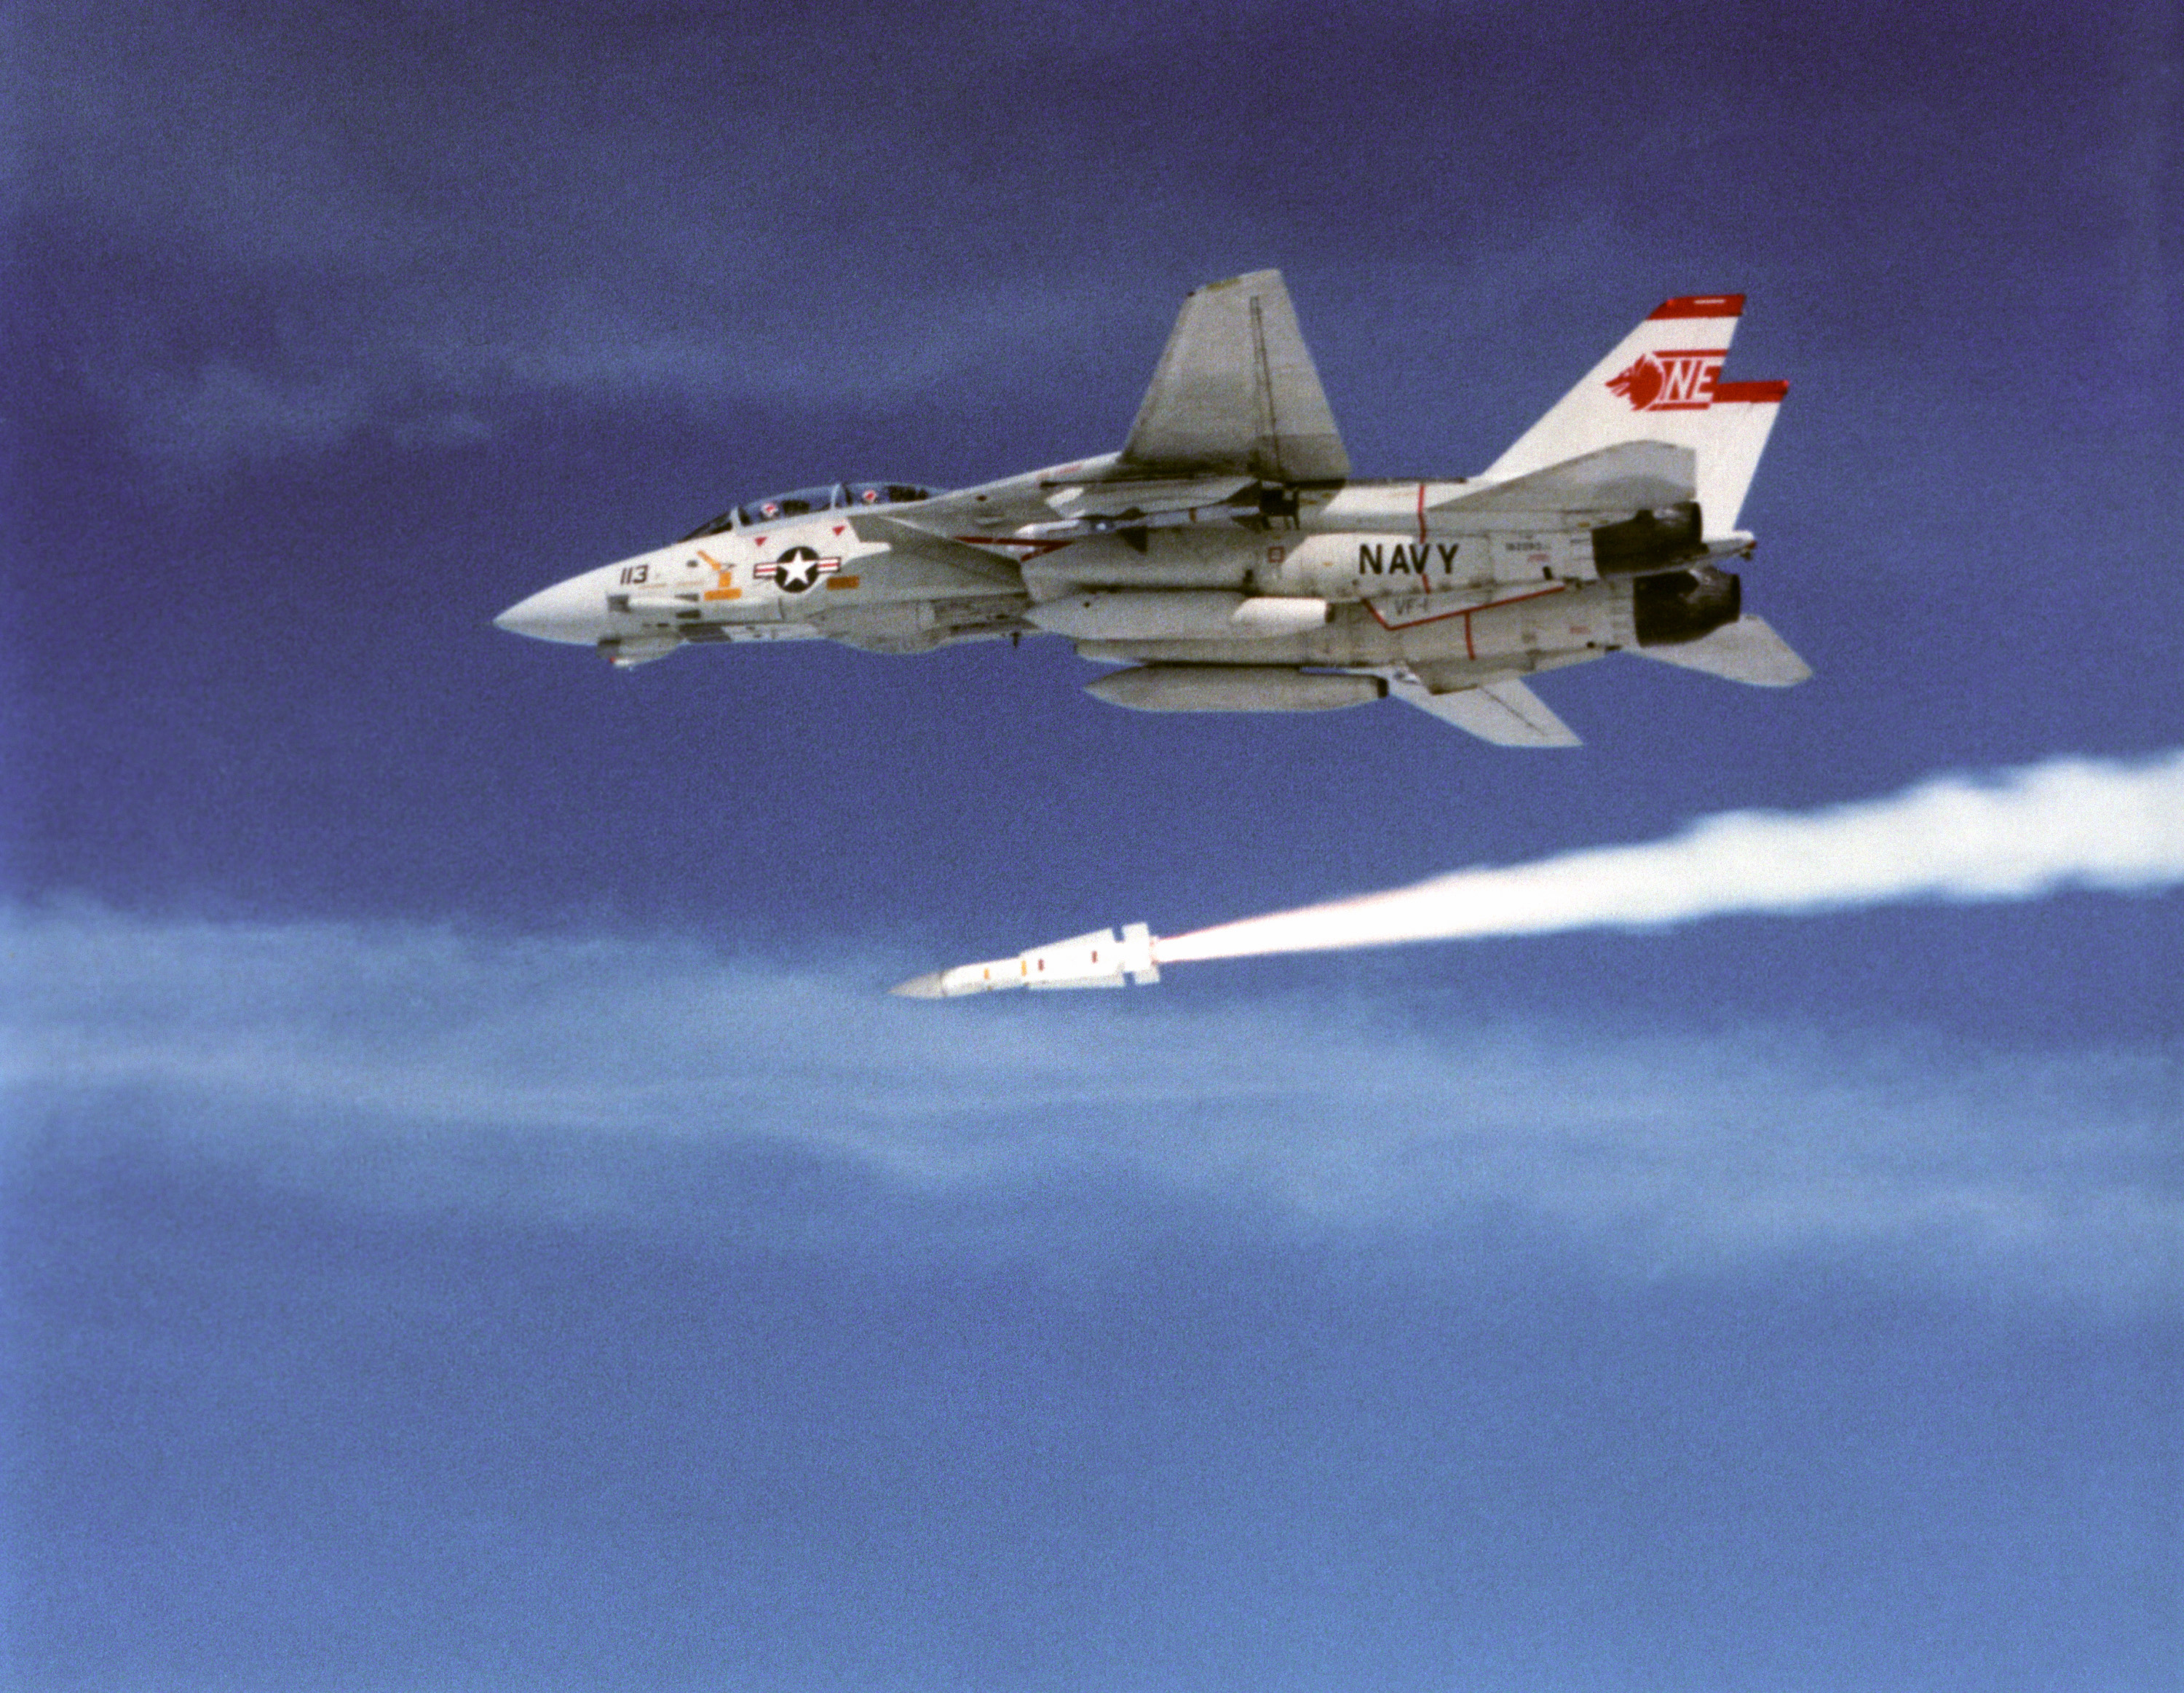 http://upload.wikimedia.org/wikipedia/commons/8/8d/F-14A_VF-1_launching_AIM-54_Phoenix.JPEG